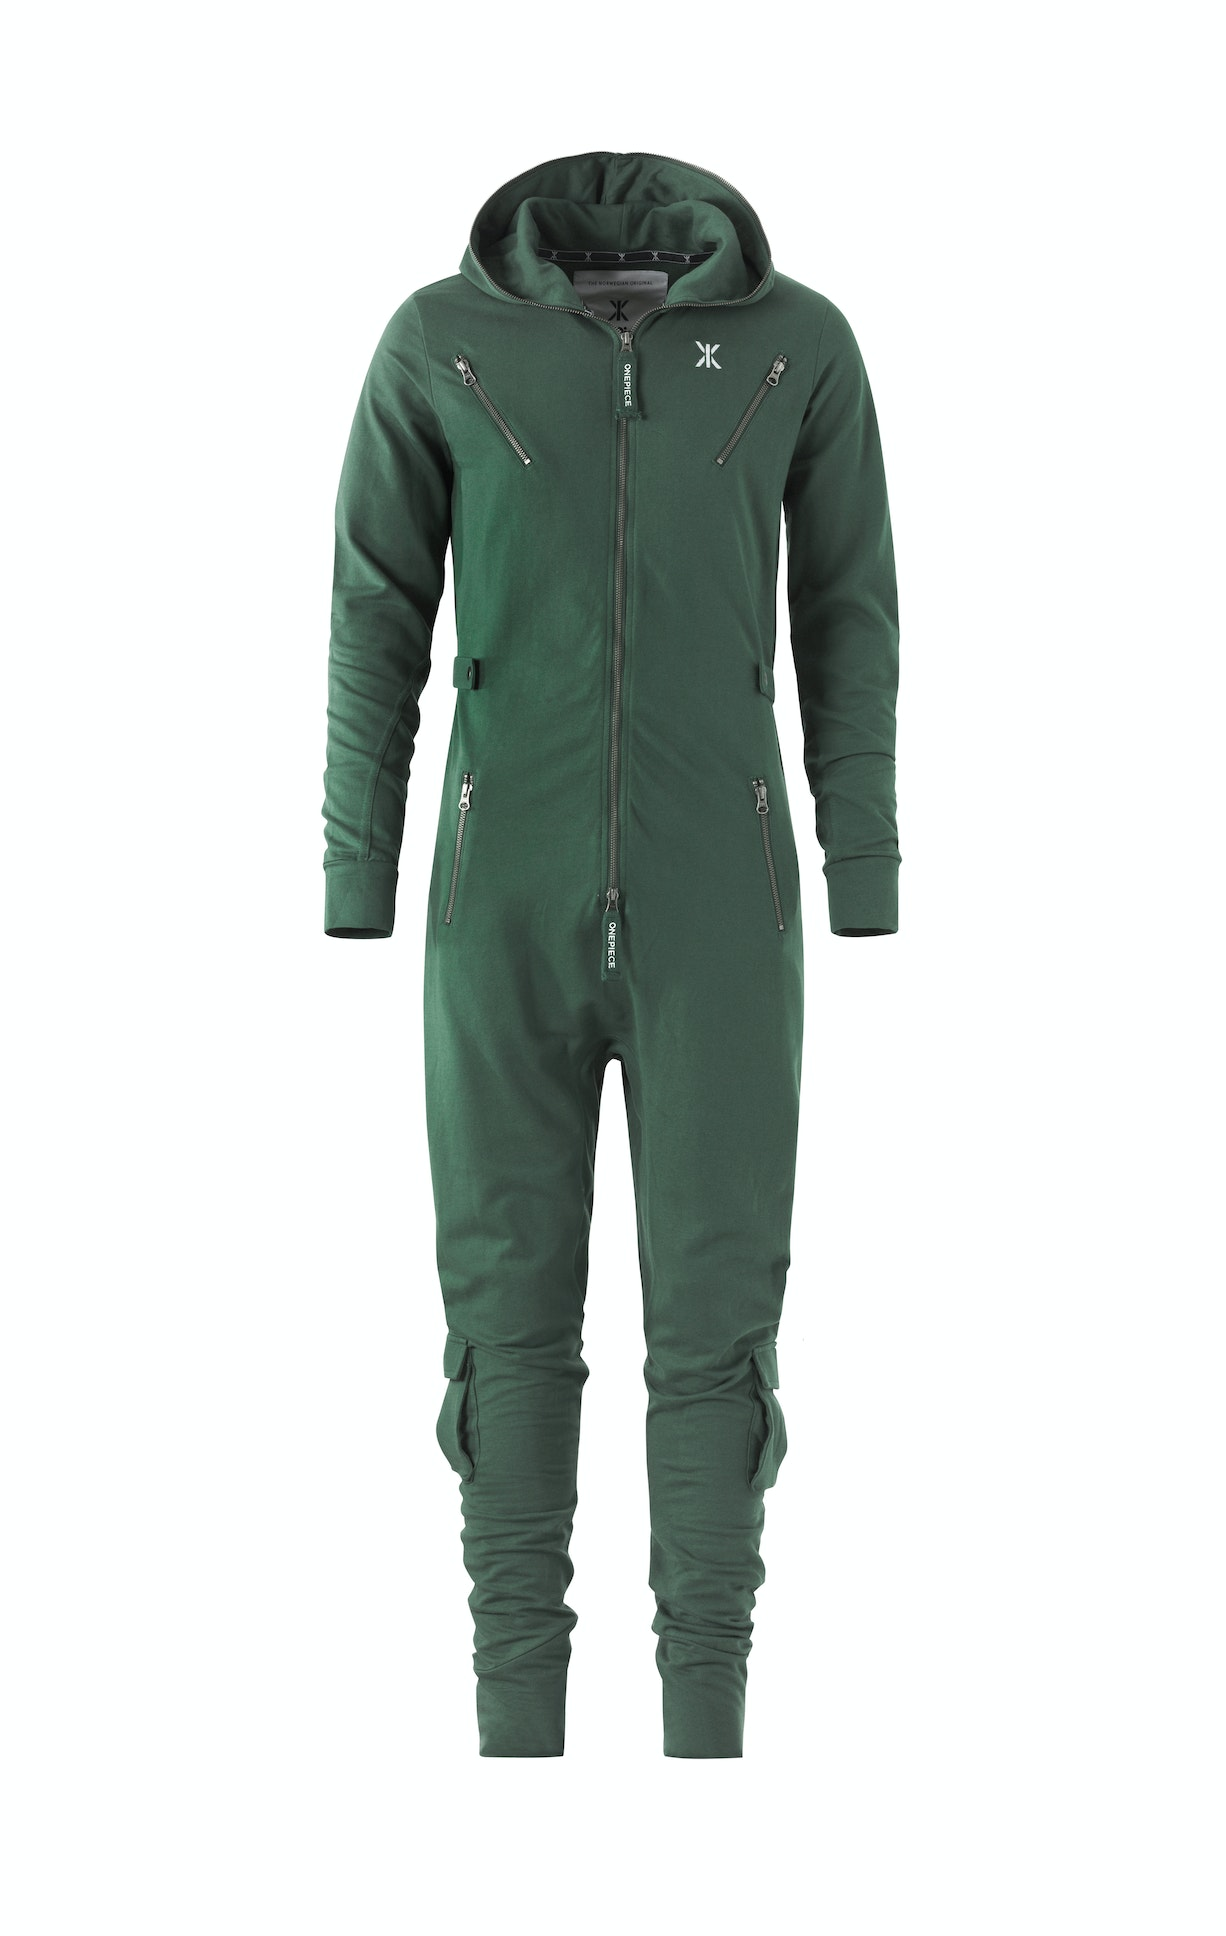 Air Jumpsuit Jungle Green Fitted green jumpsuit made from lightweight premium cotton. The jumpsuit has workwear inspired details, with metal zippers, cargo leg pockets and buttoned waist tightener, as well as a slightly dropped crotch.